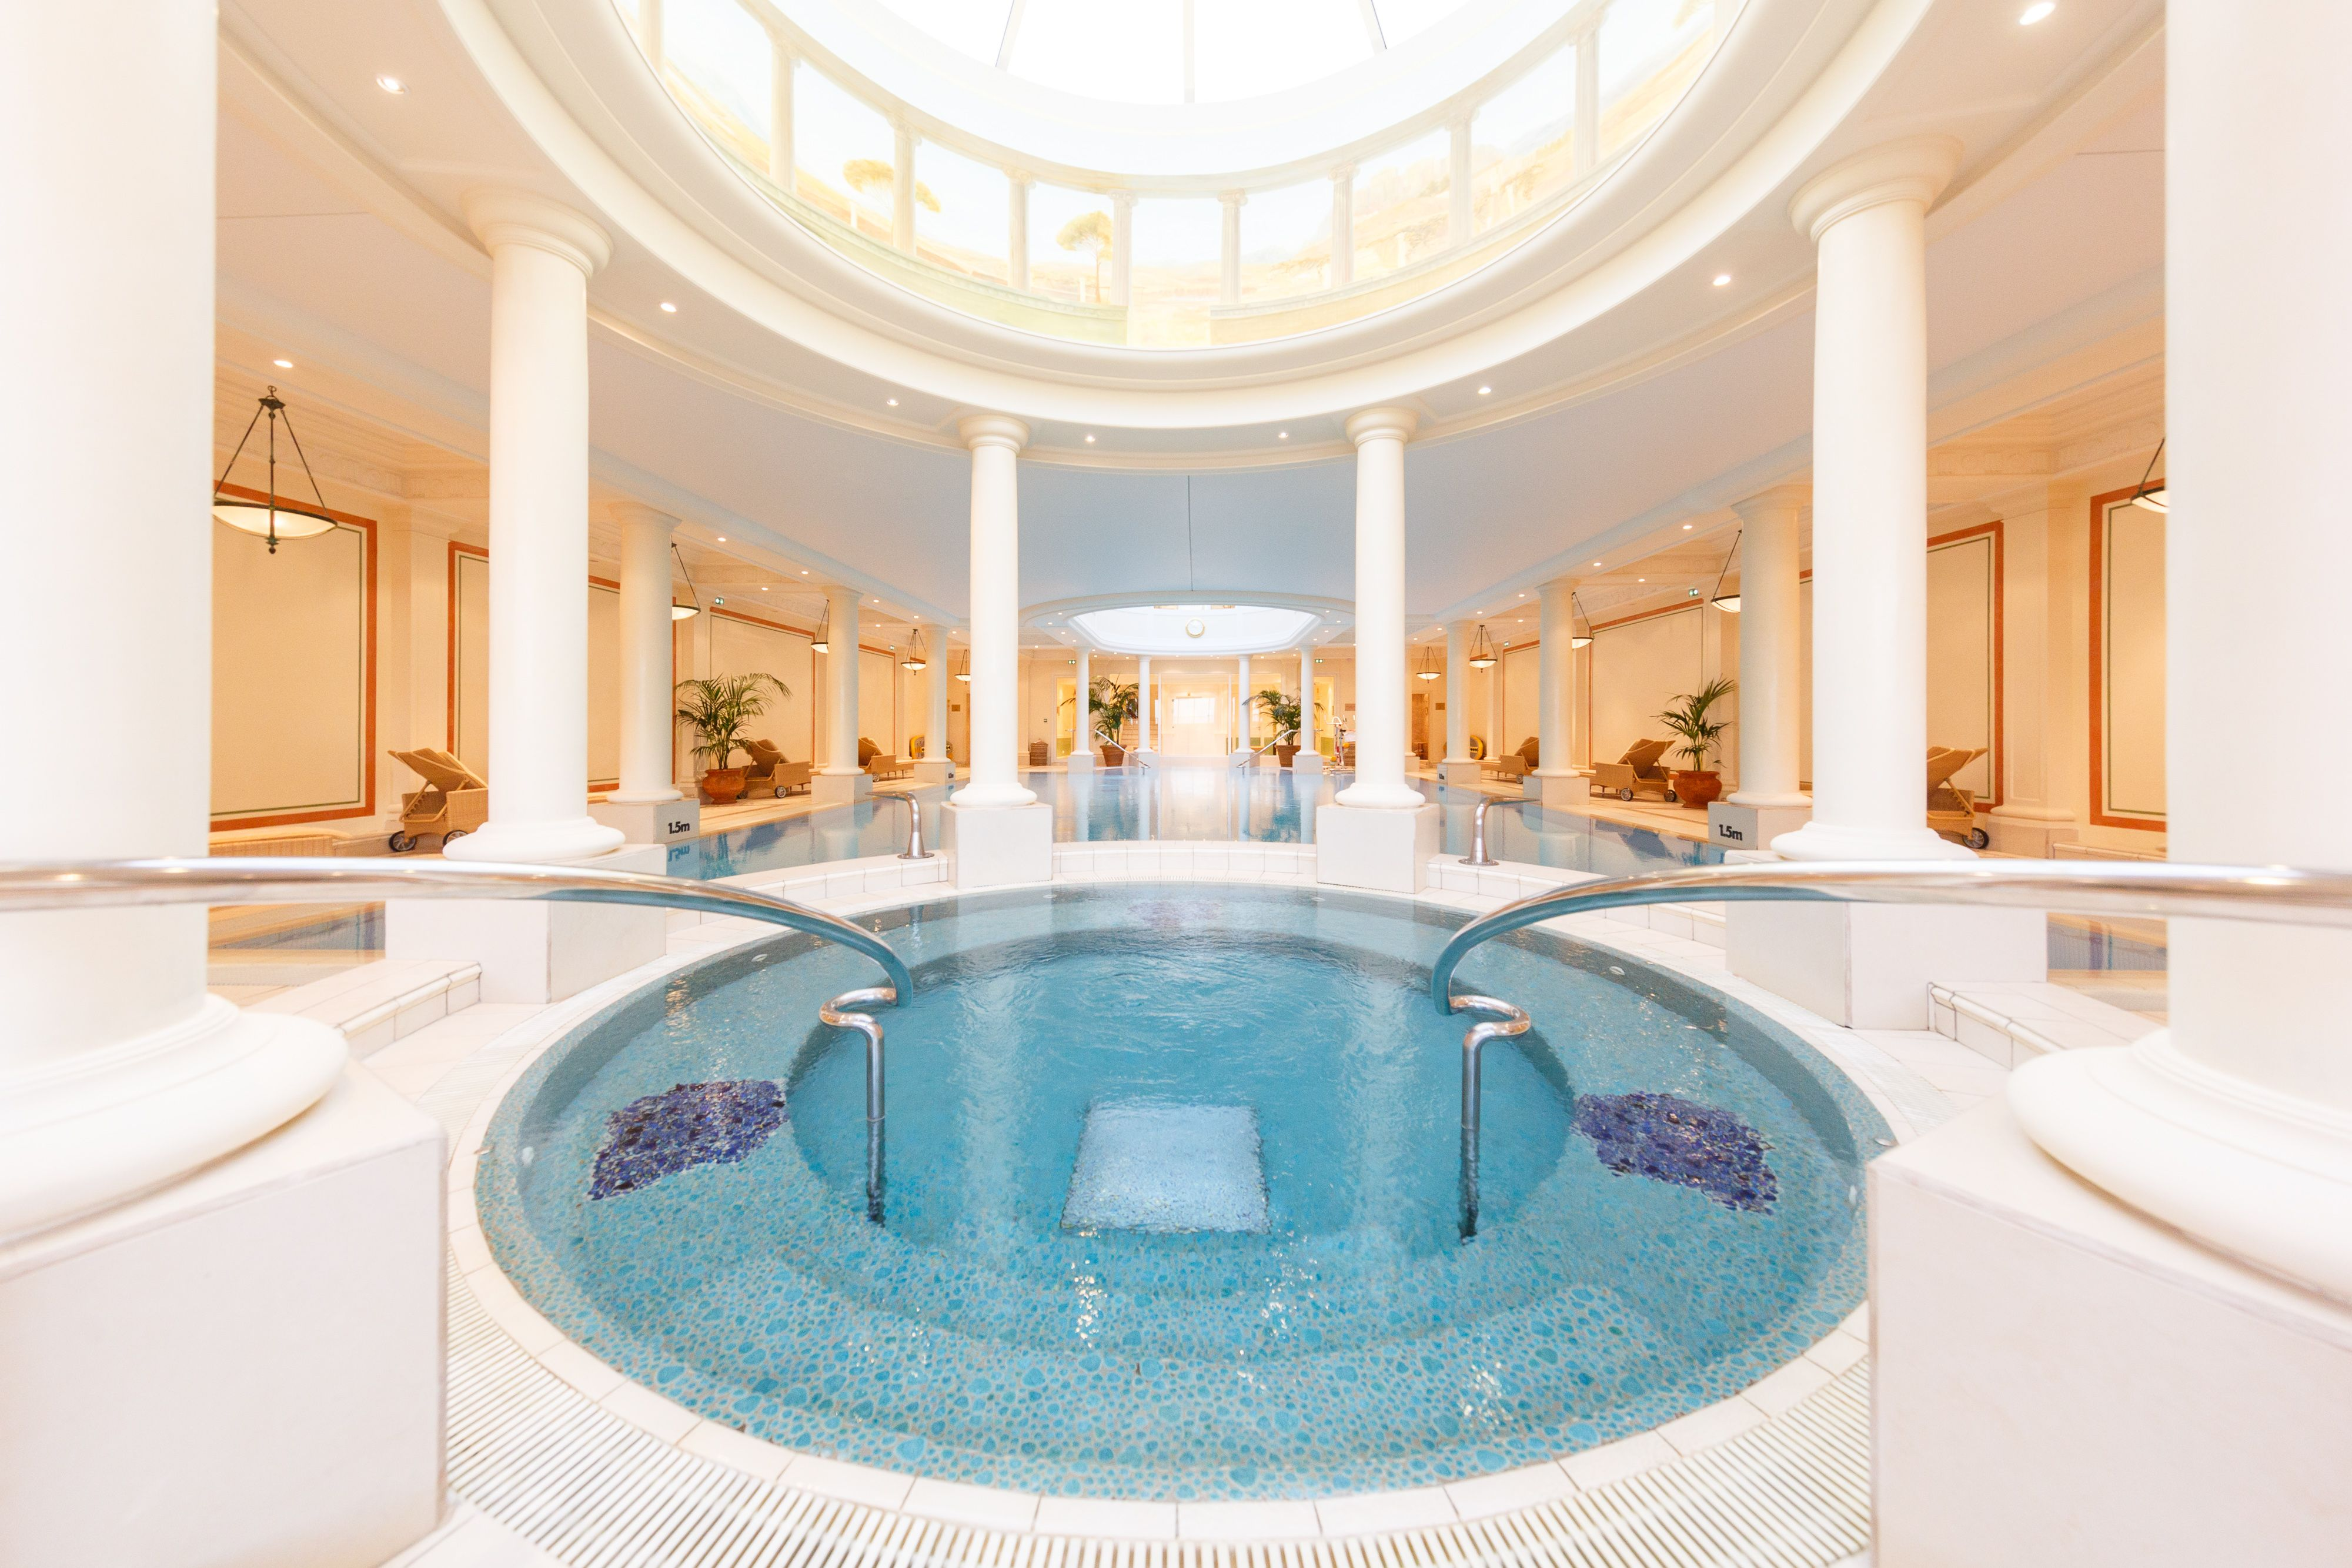 spa #biarritz #france #aquitaine #wellness #care #wellbeing #relax ...